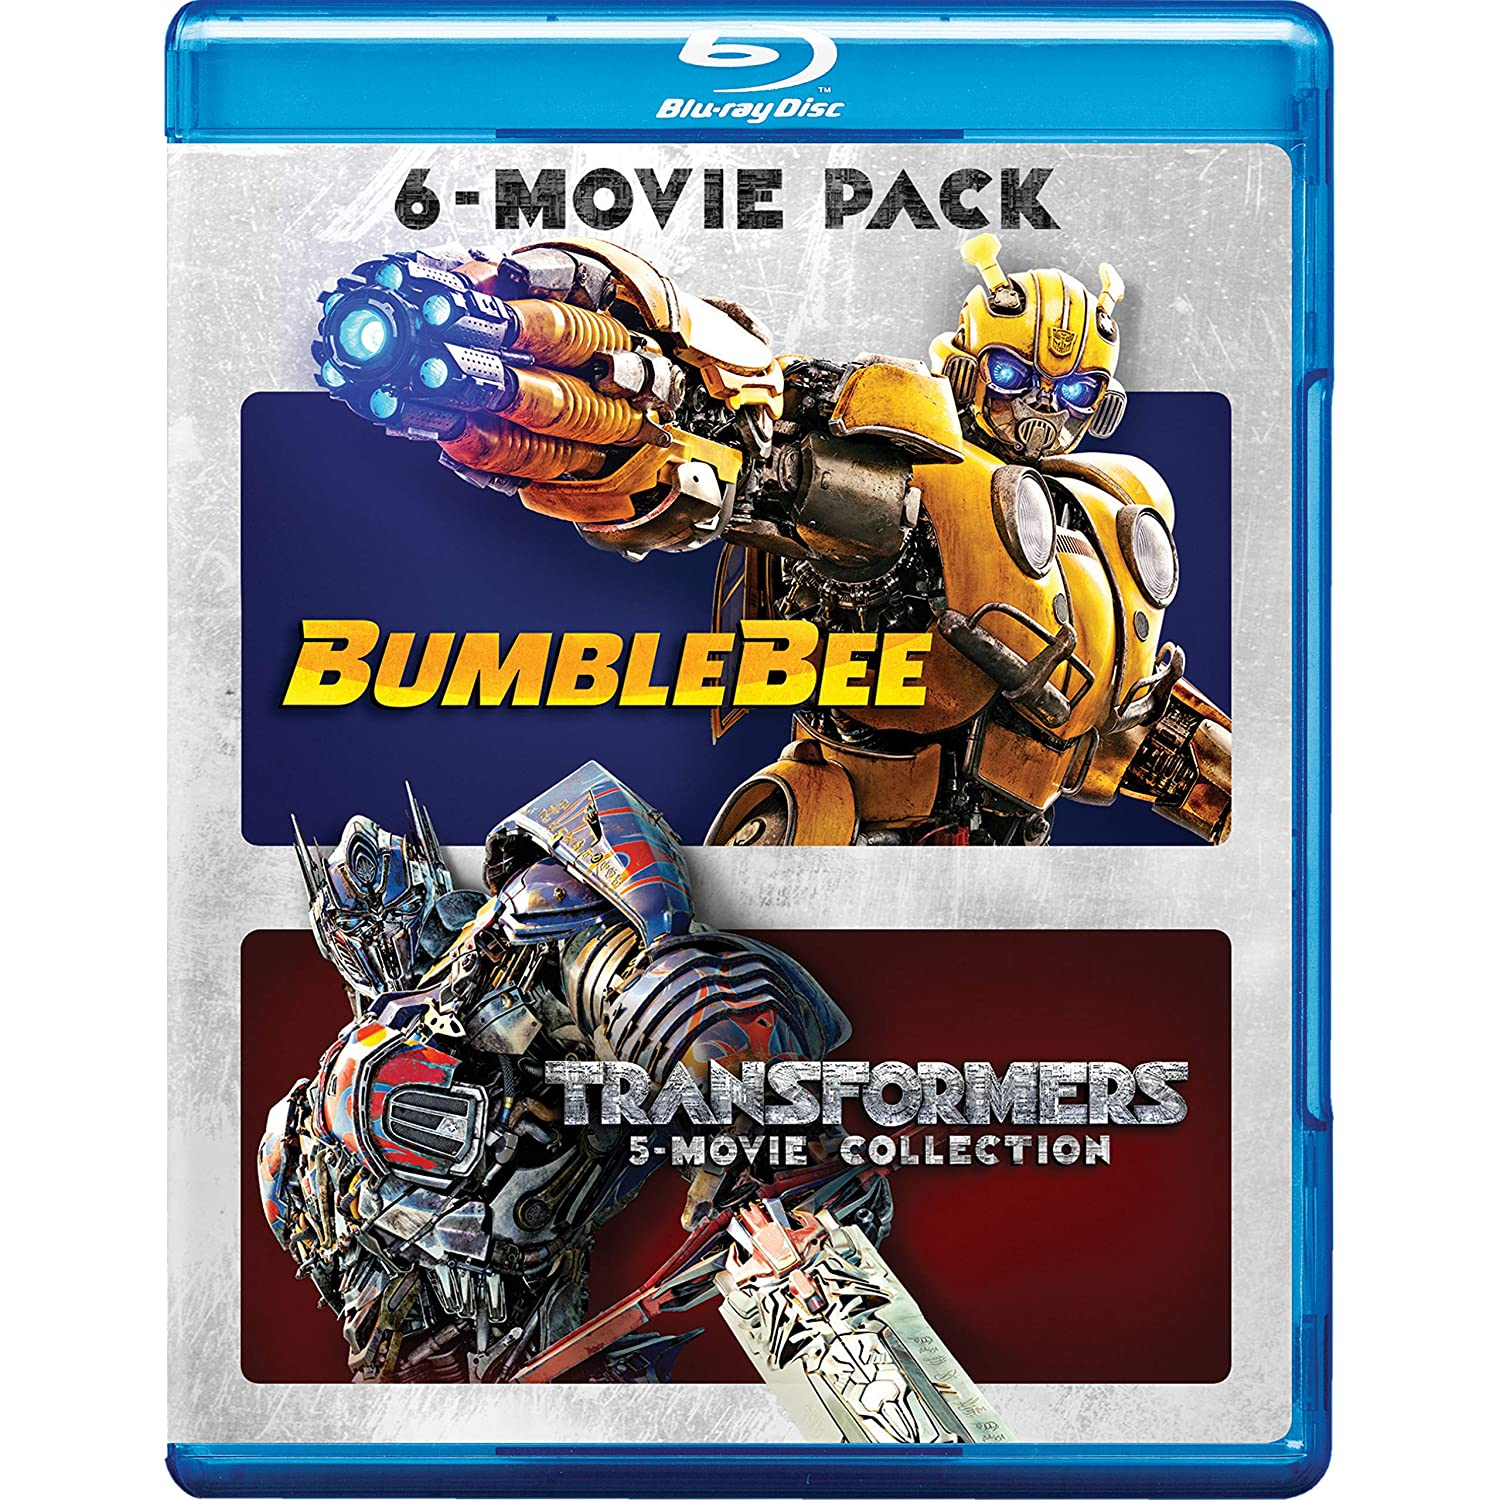 Transformers 5 full movie free download in hindi hd